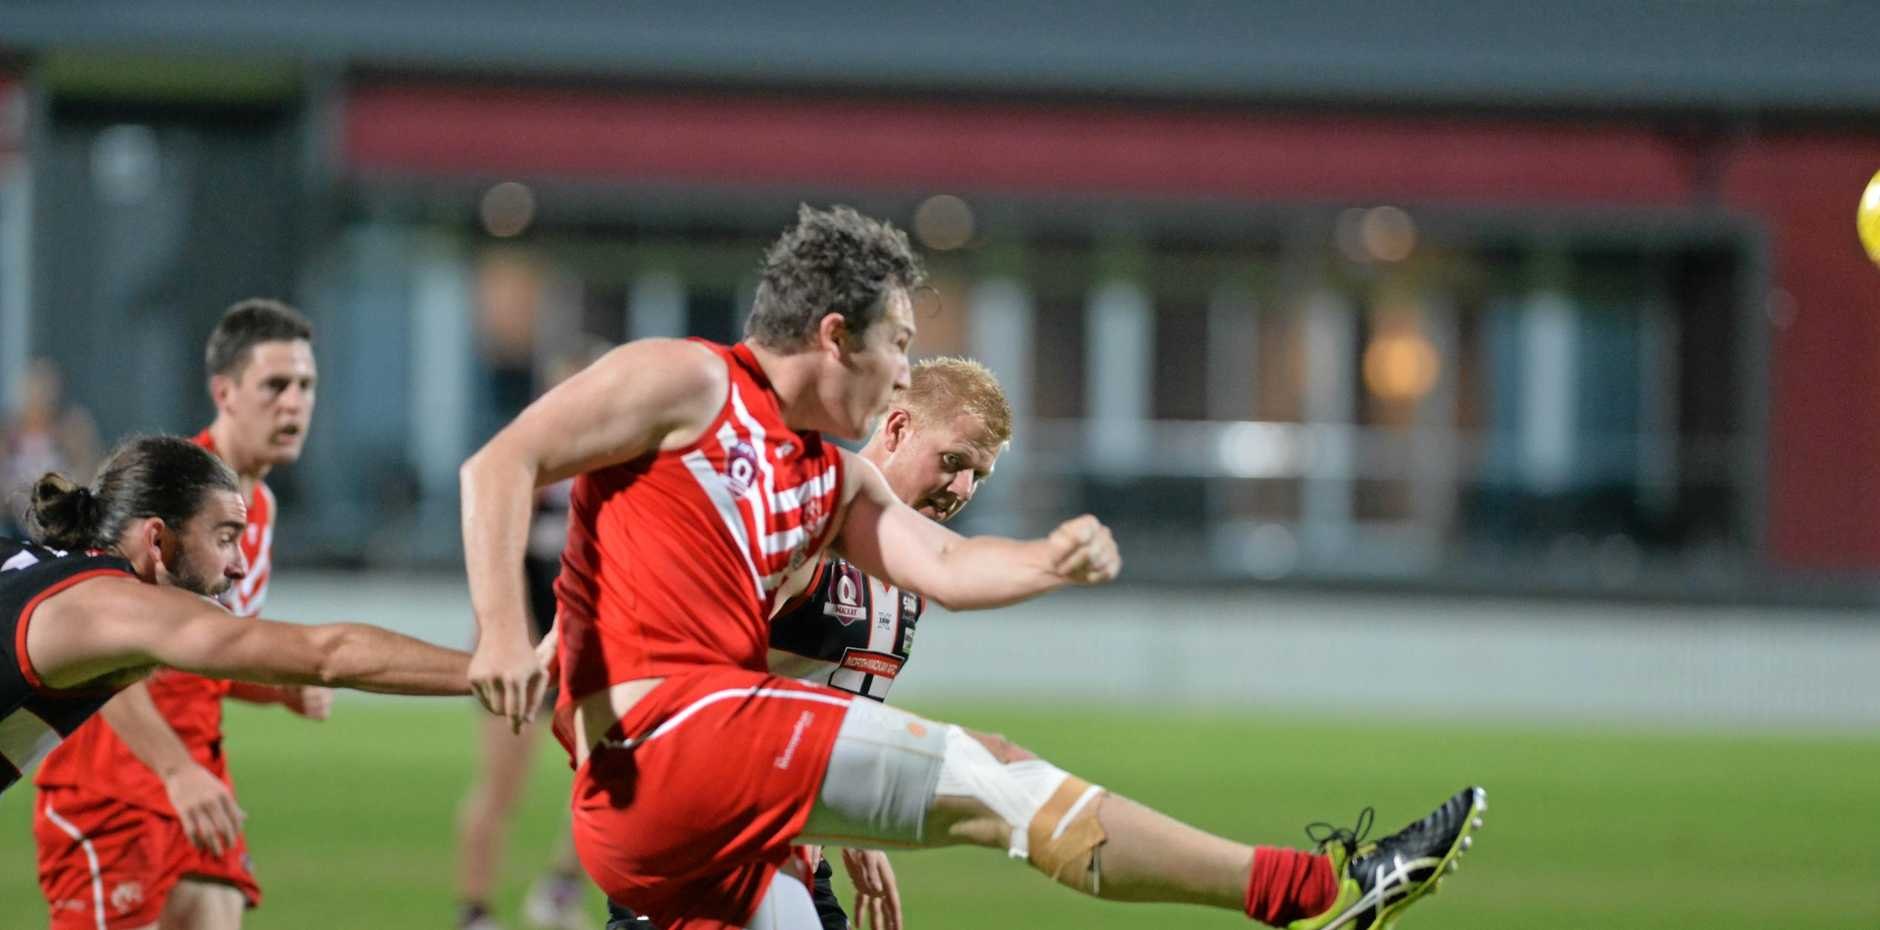 IN ACTION: Liam Porter from the Swans belted the ball up field before the Saints could close in for a tackle.